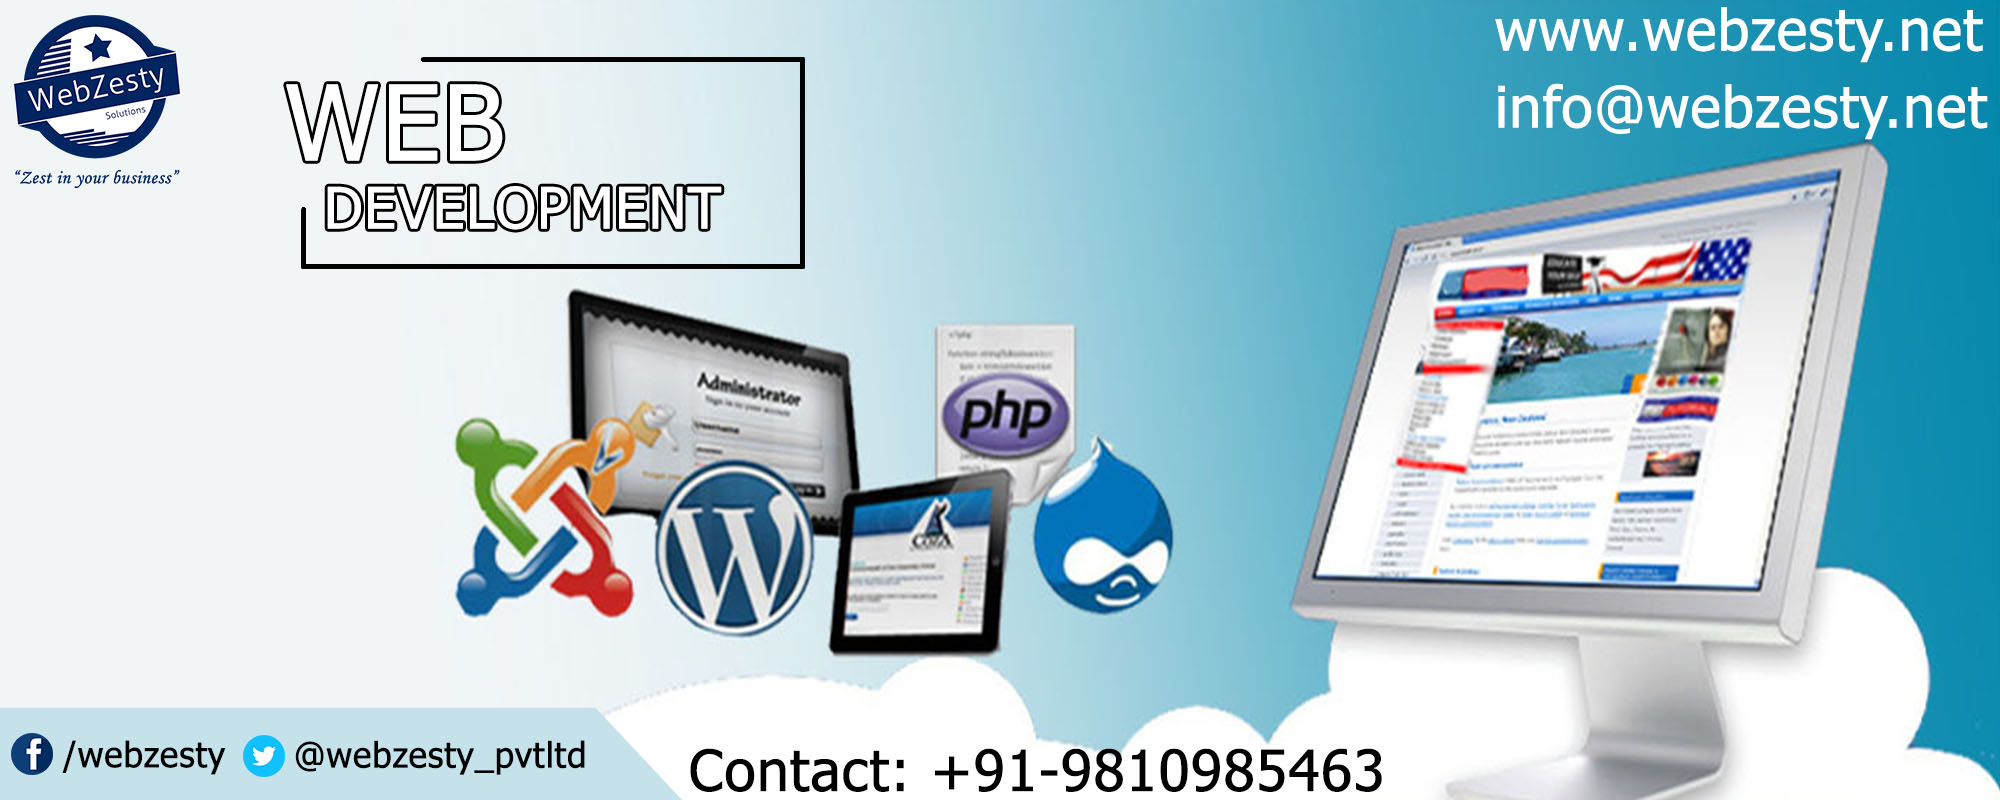 Our Website Development Services Helps to Boost Your Business